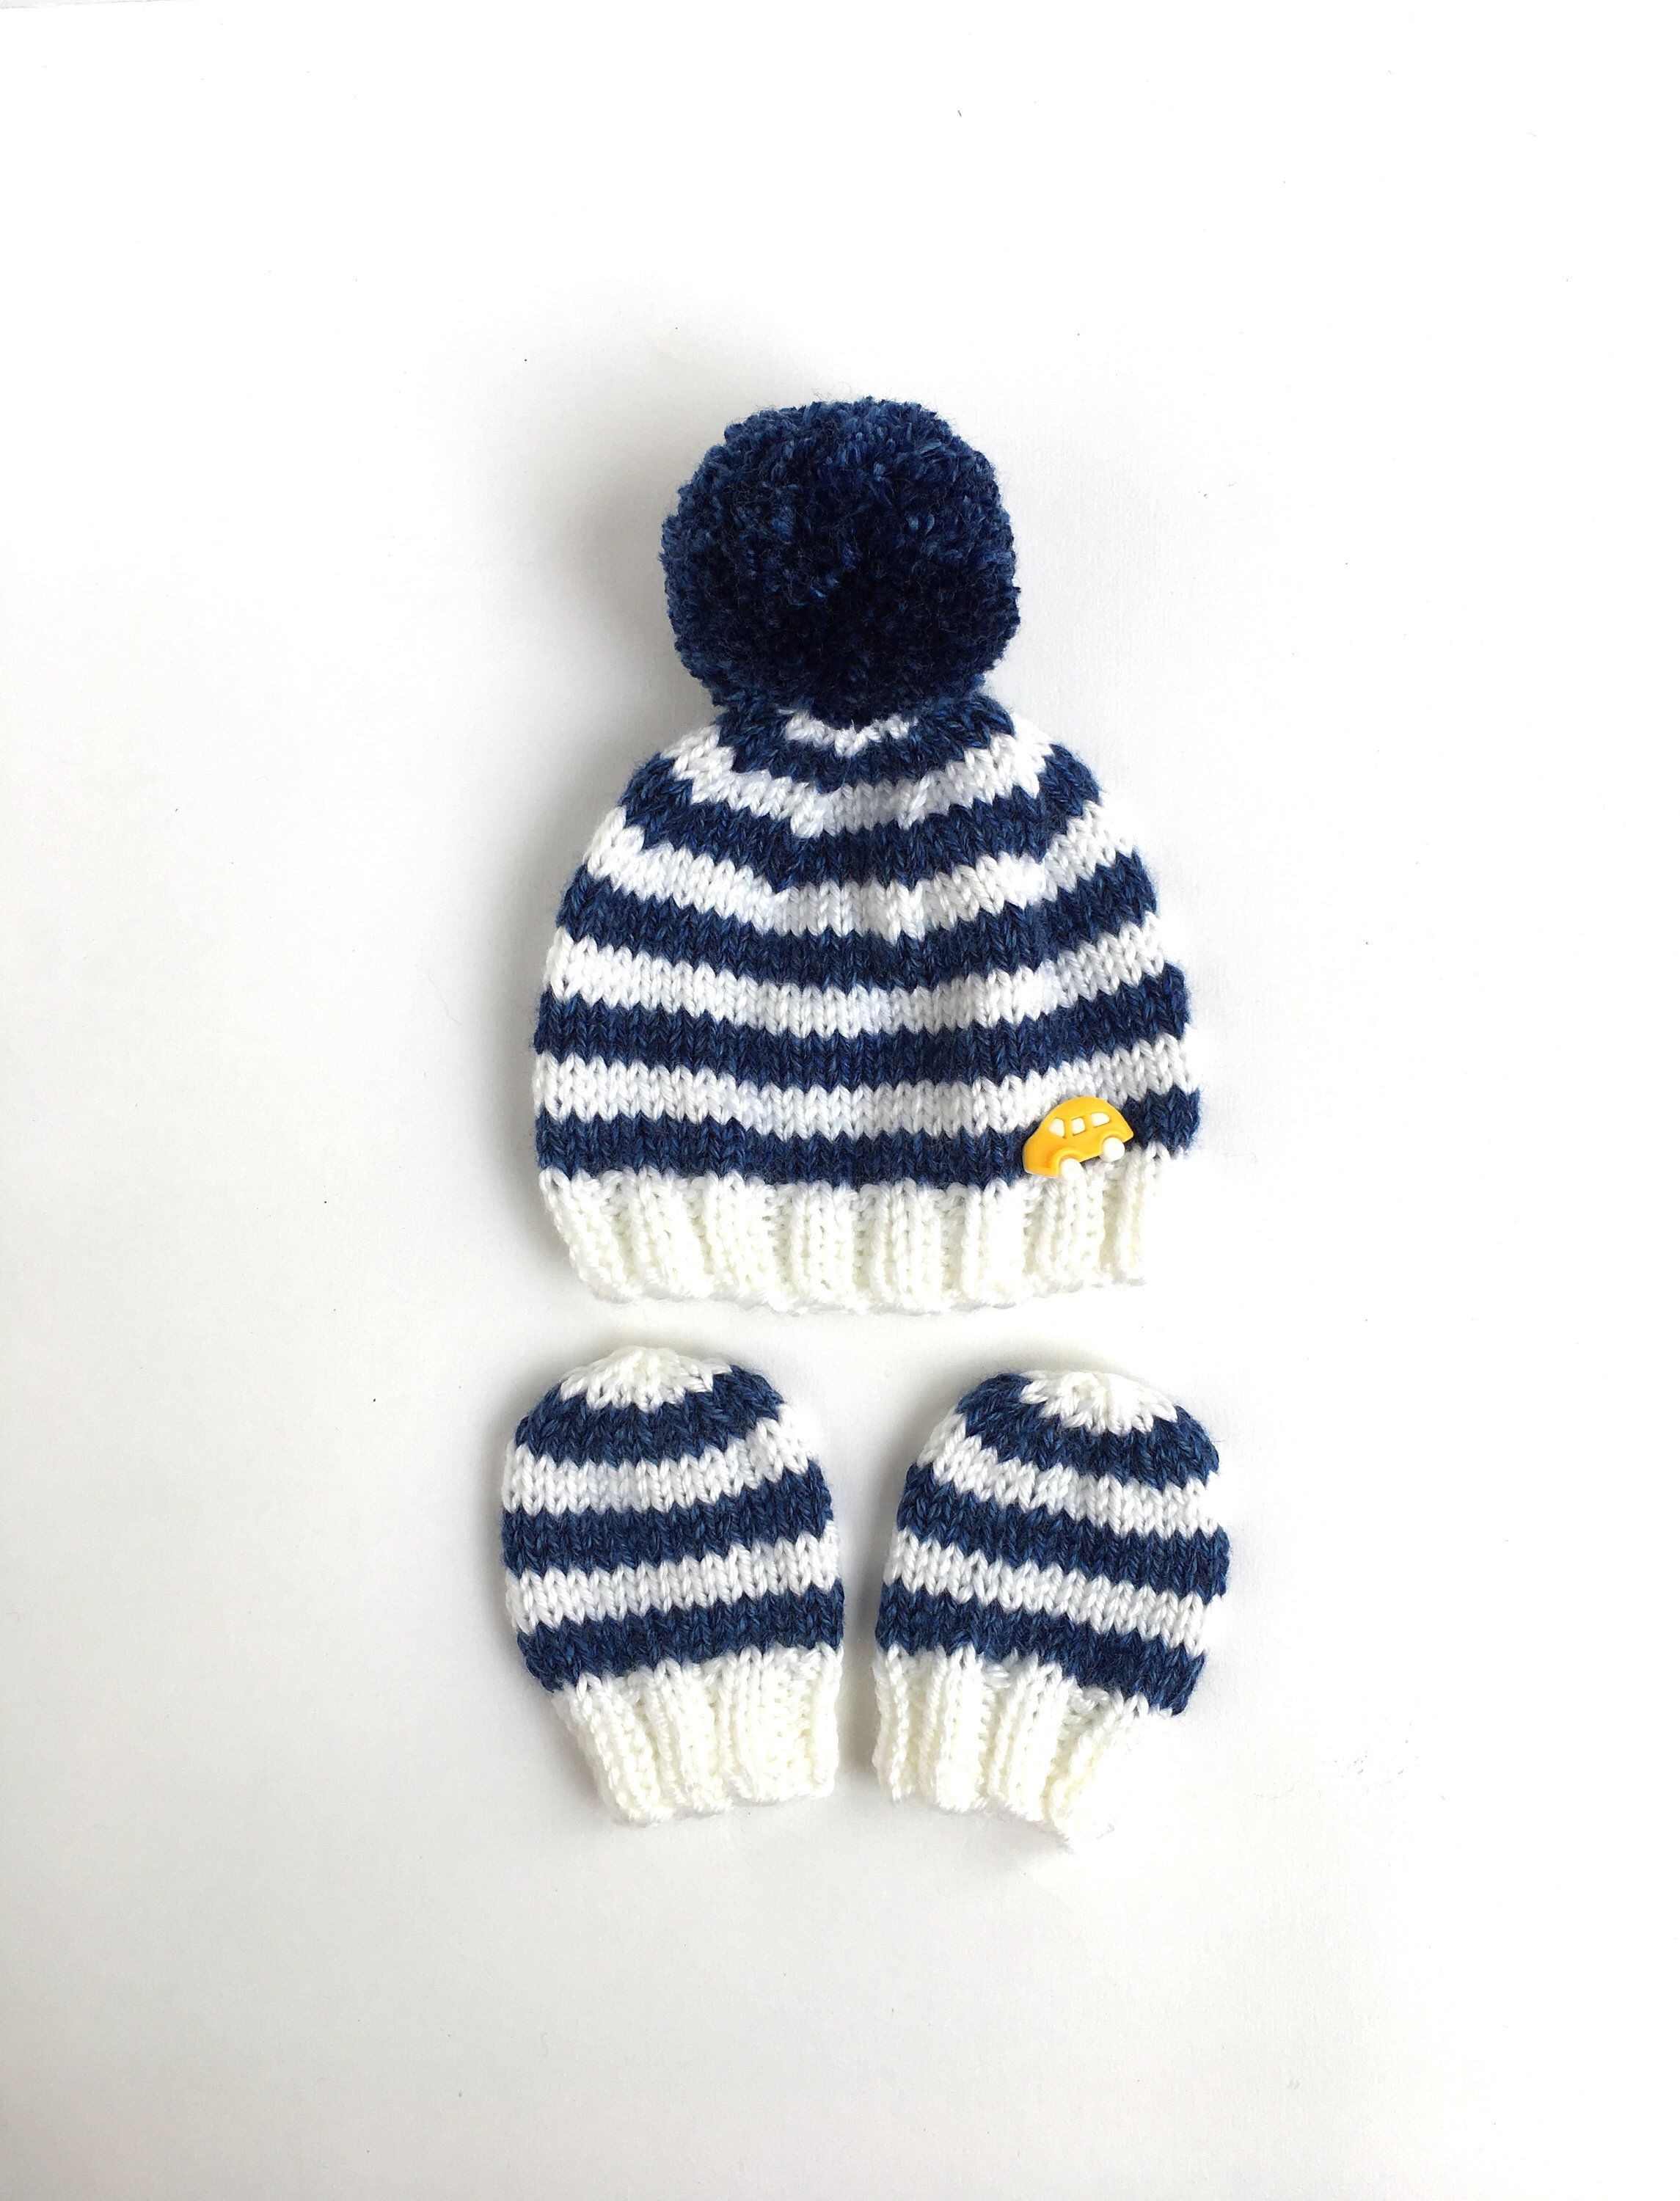 Striped blue and white baby boy beanie and mittens set with yellow car  button   knitted winter newborn beanie with mittens 25c076ffa4b